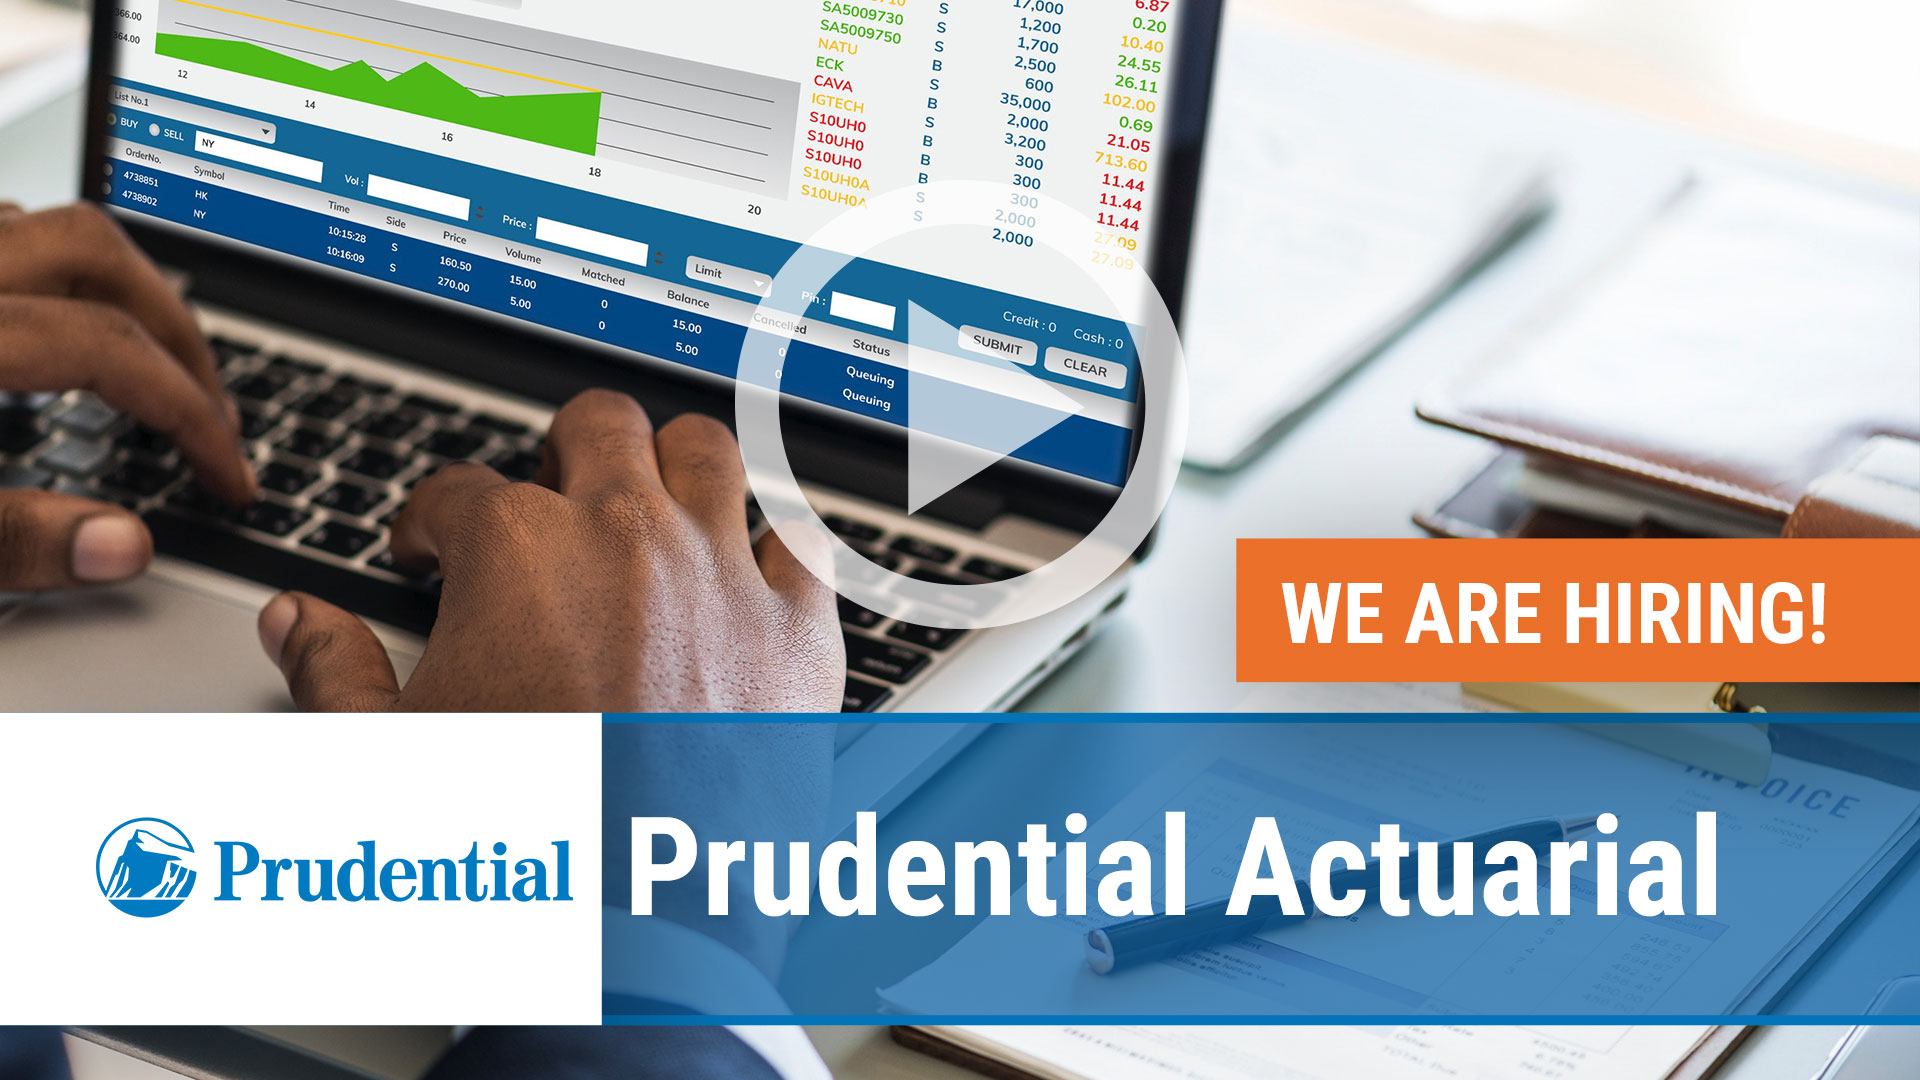 Watch our careers video for available job opening Prudential Actuarial in Newark, NJ